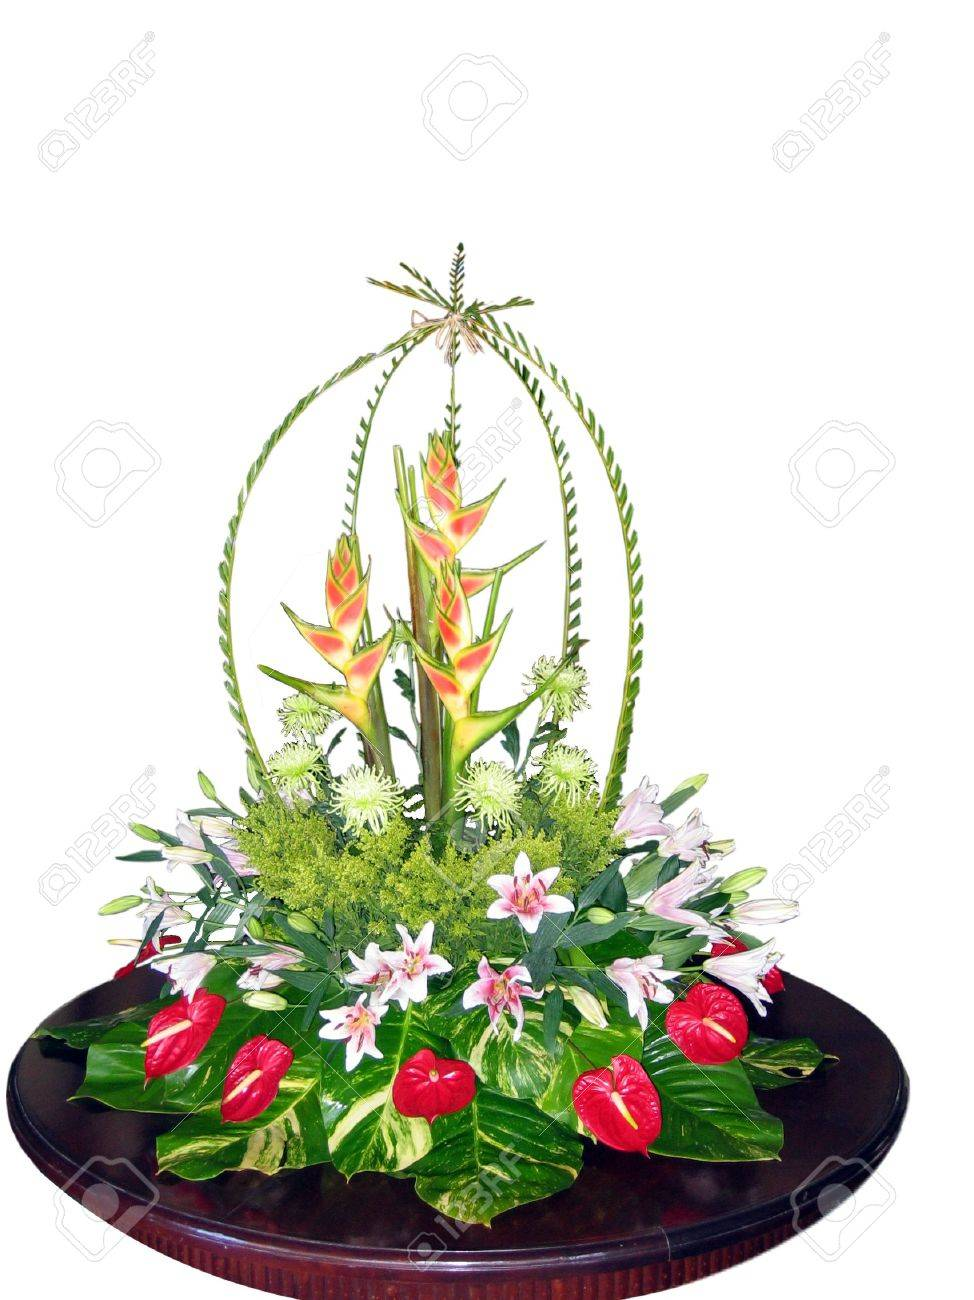 Exotic Flower Bouquet Isolated Stock Photo, Picture And Royalty Free ...